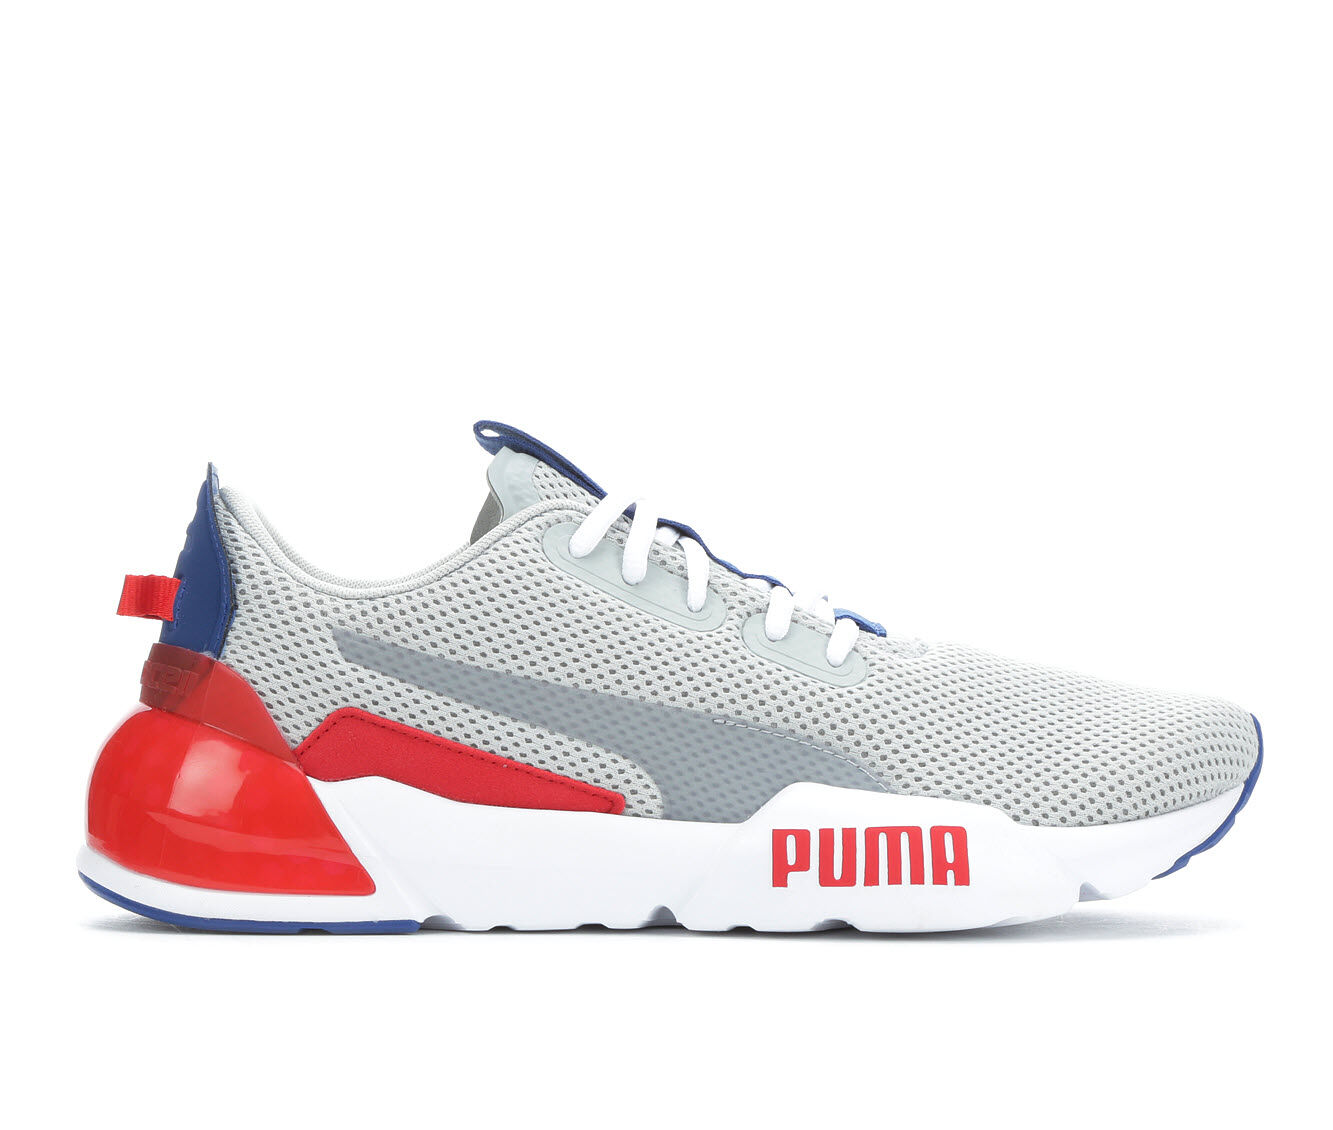 Men's Puma Cell Phase Sheer Sneakers Gry/Blu/Red/Wht